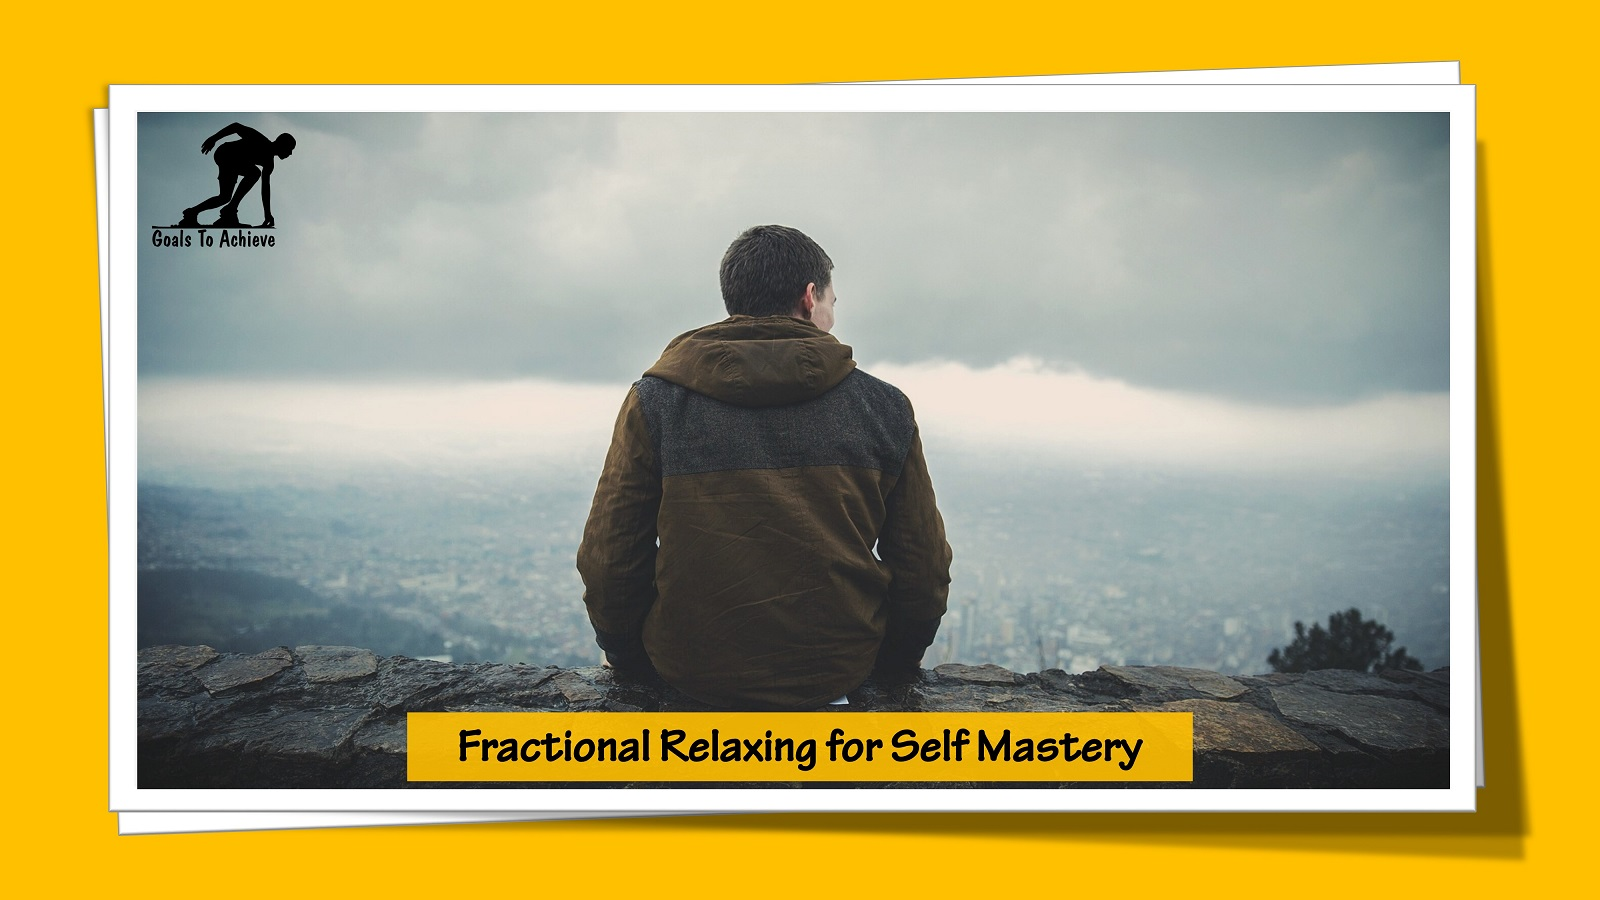 Fractional Relaxing for Self Mastery